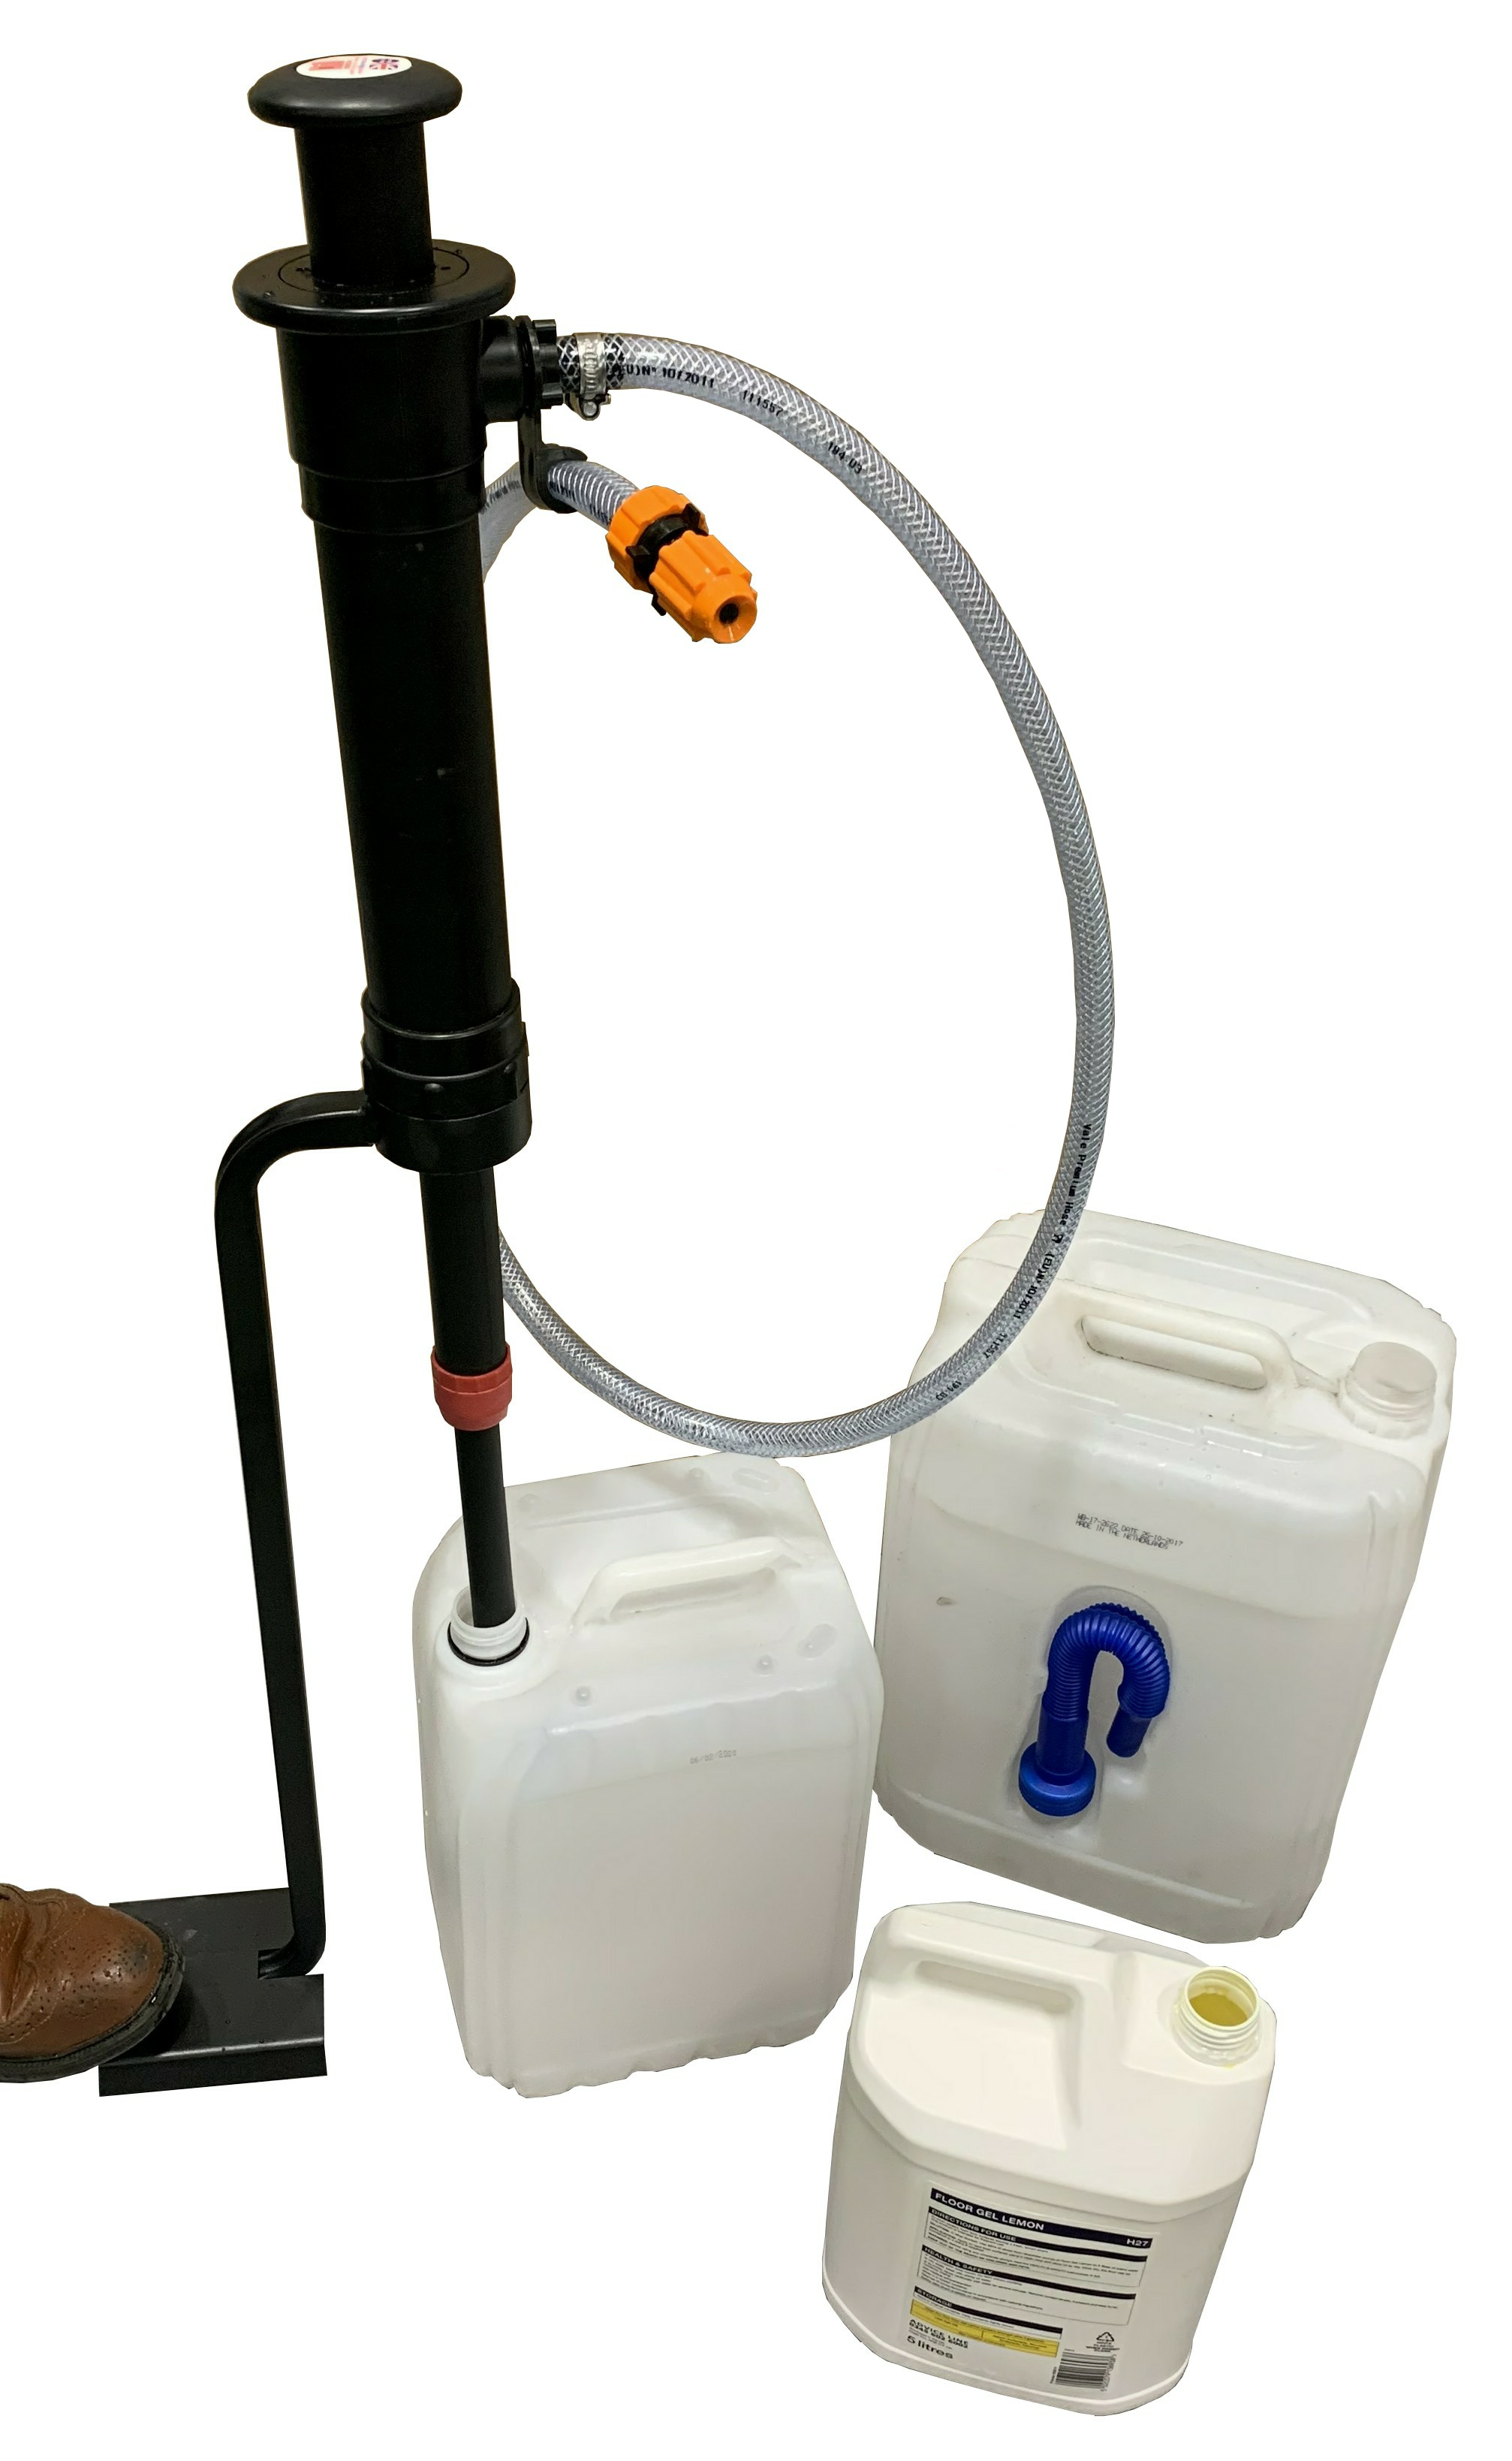 925 Disinfectant and Cleaning Multi-Purpose Stirrup Pump